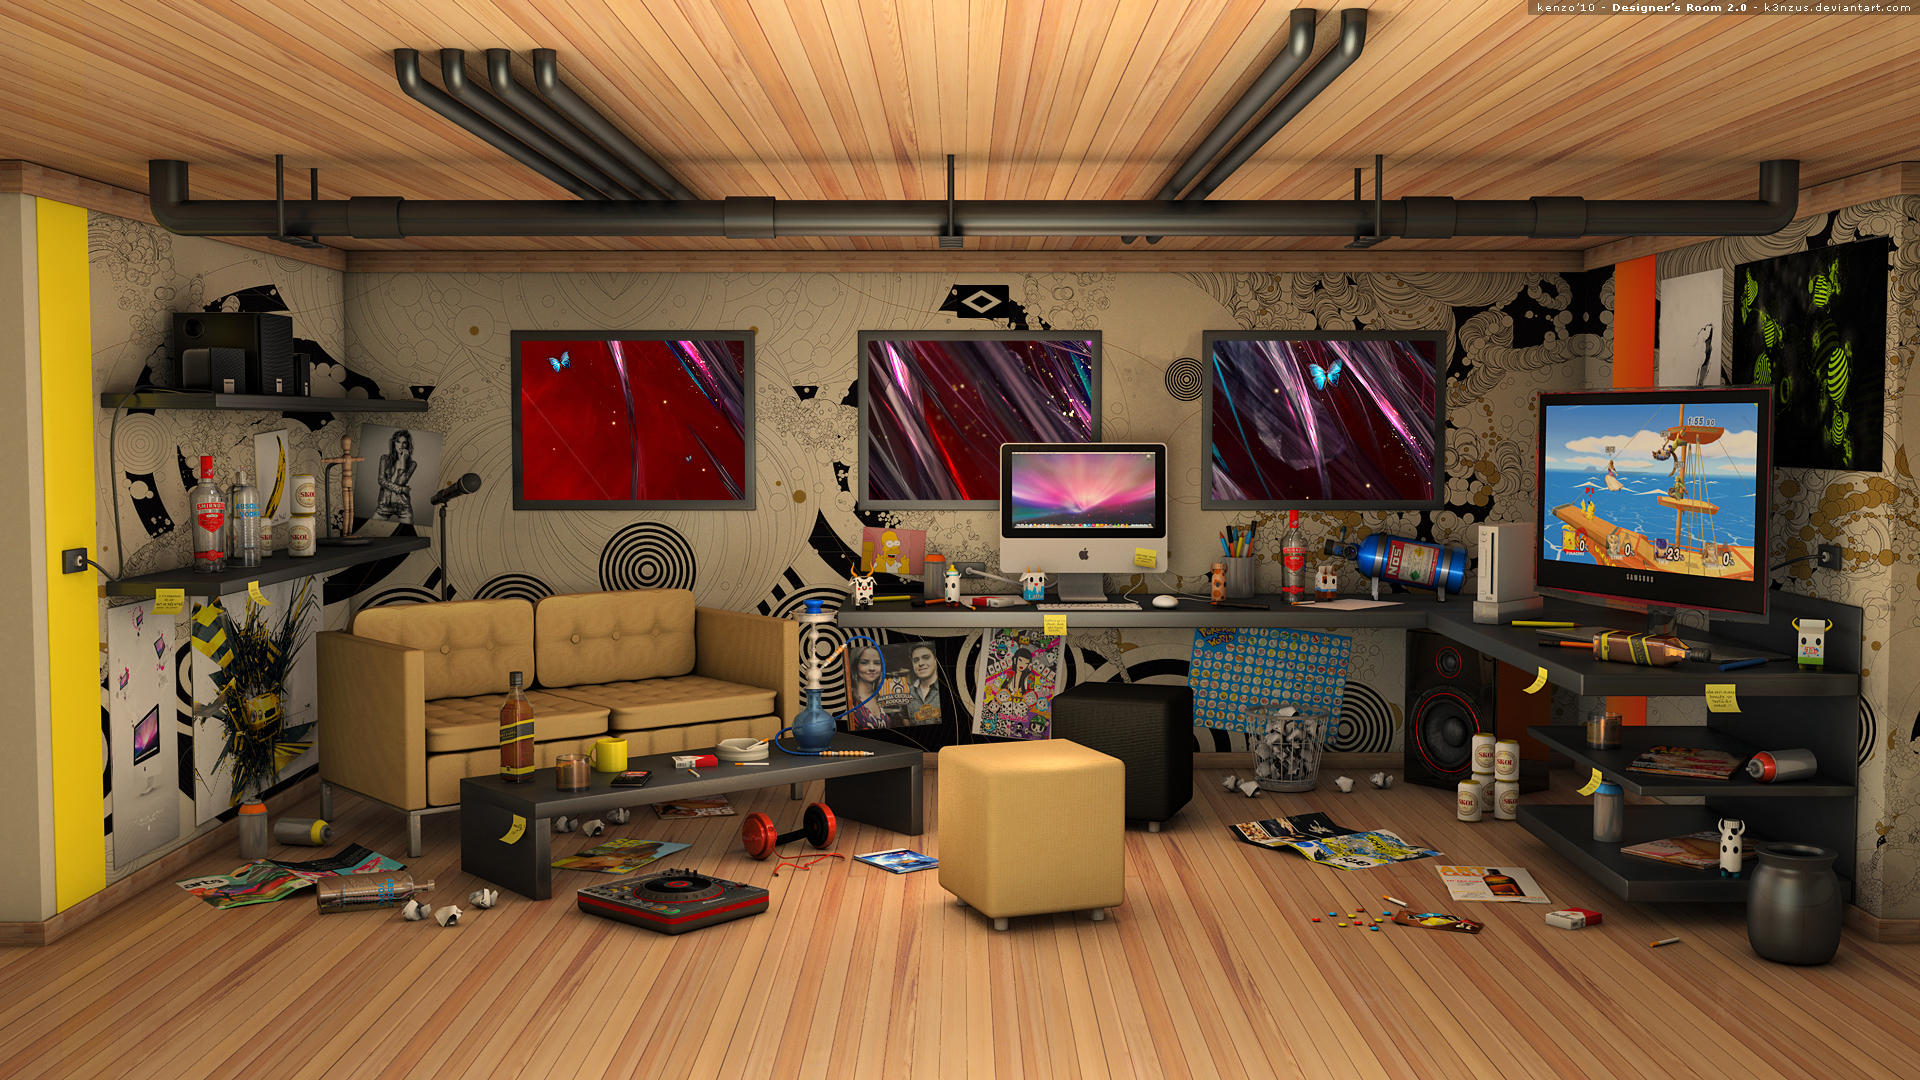 Designers Room 20 by K3nzuS on DeviantArt